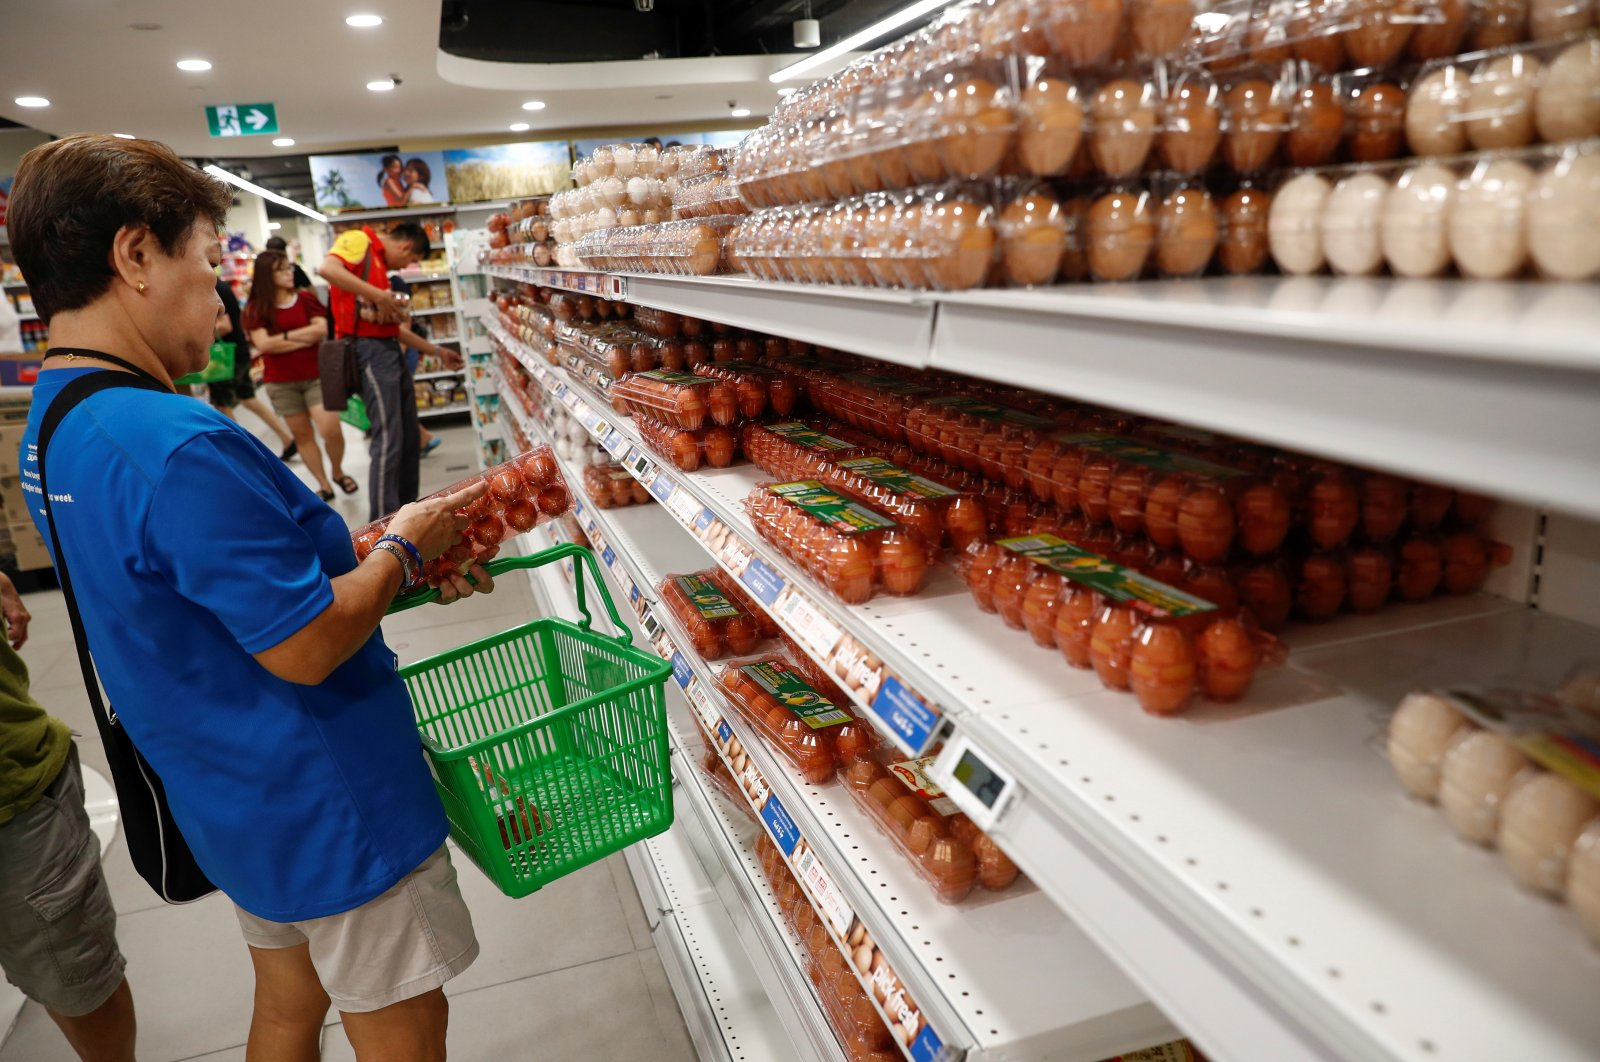 People buy eggs at a supermarket in Singapore, March 17, 2020. (Reuters Photo)